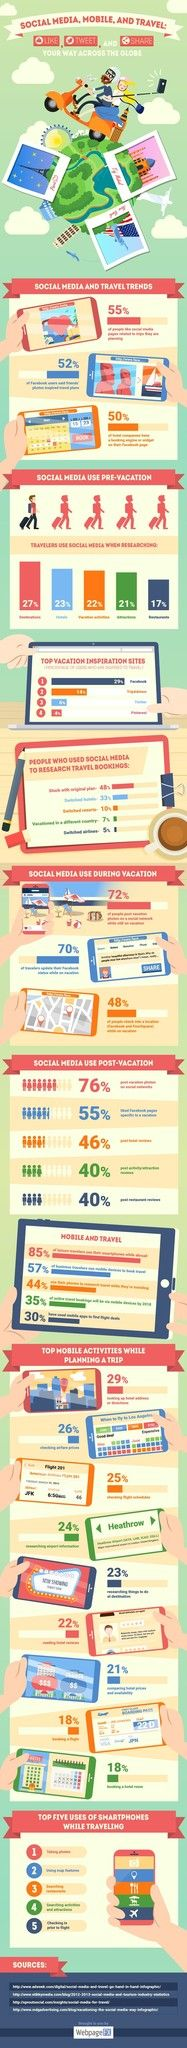 Learn how #SocialMedia and #MobileTechnology affect travel in this article!